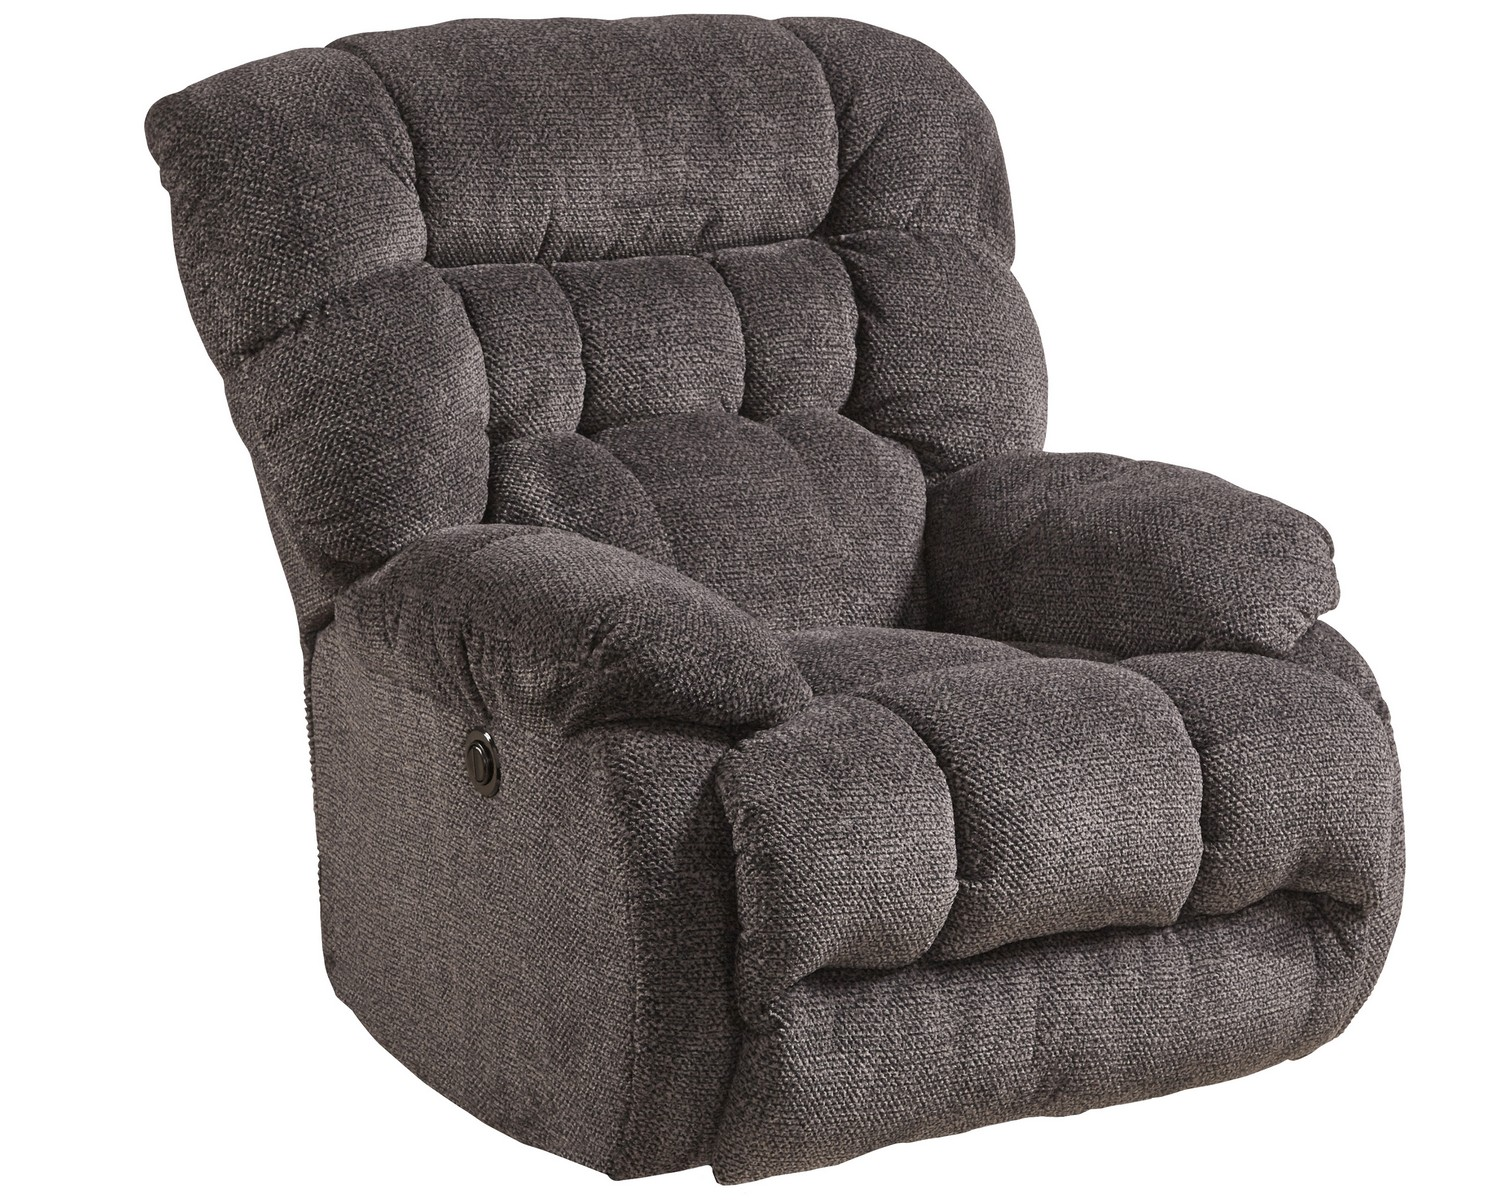 Catnapper Daly Chaise Swivel Glider Recliner Cobblestone